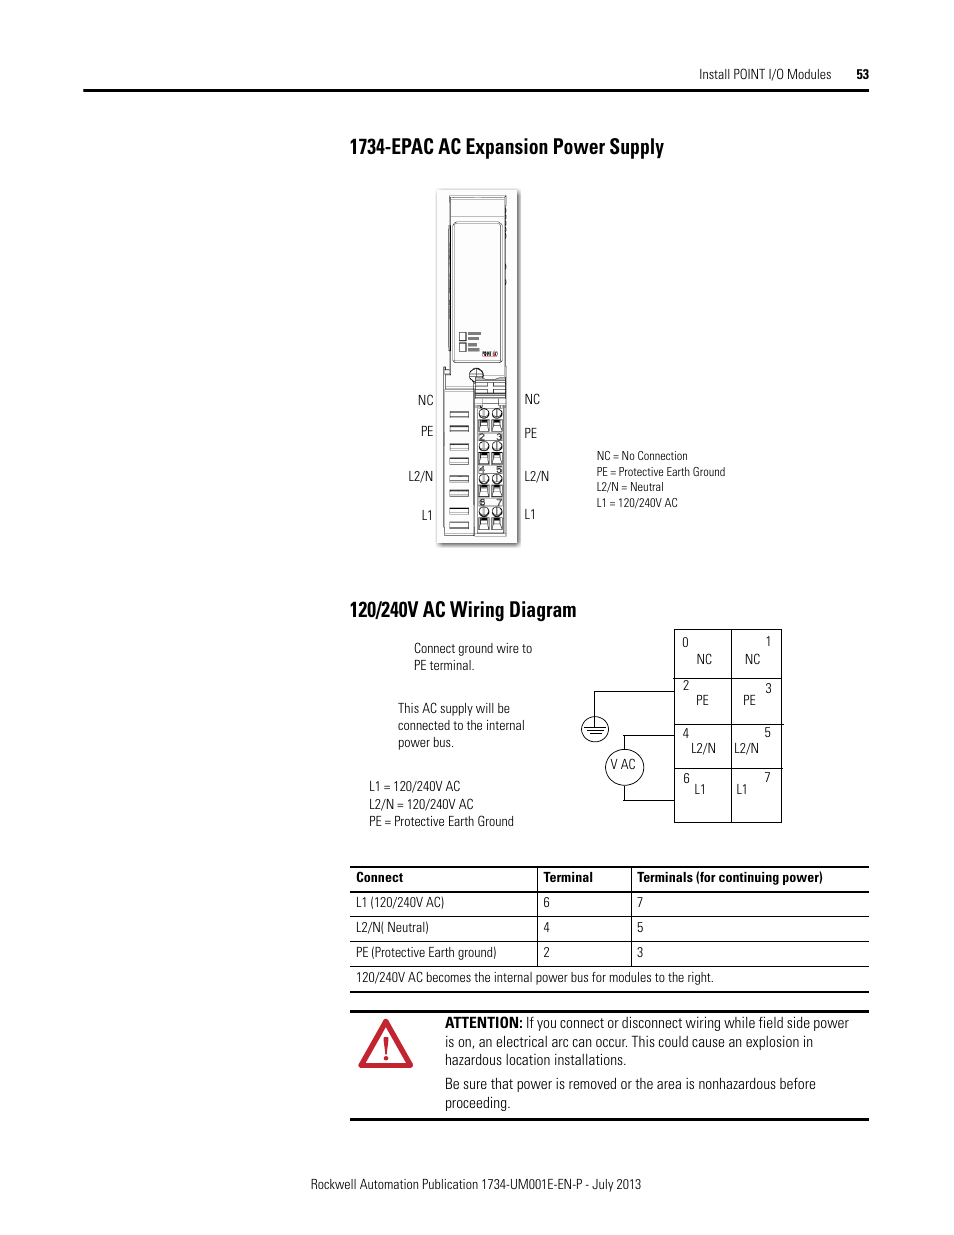 hight resolution of 1734 epac ac expansion power supply 120 240v ac wiring diagram wiring a potentiometer for motor 240vac wiring diagram